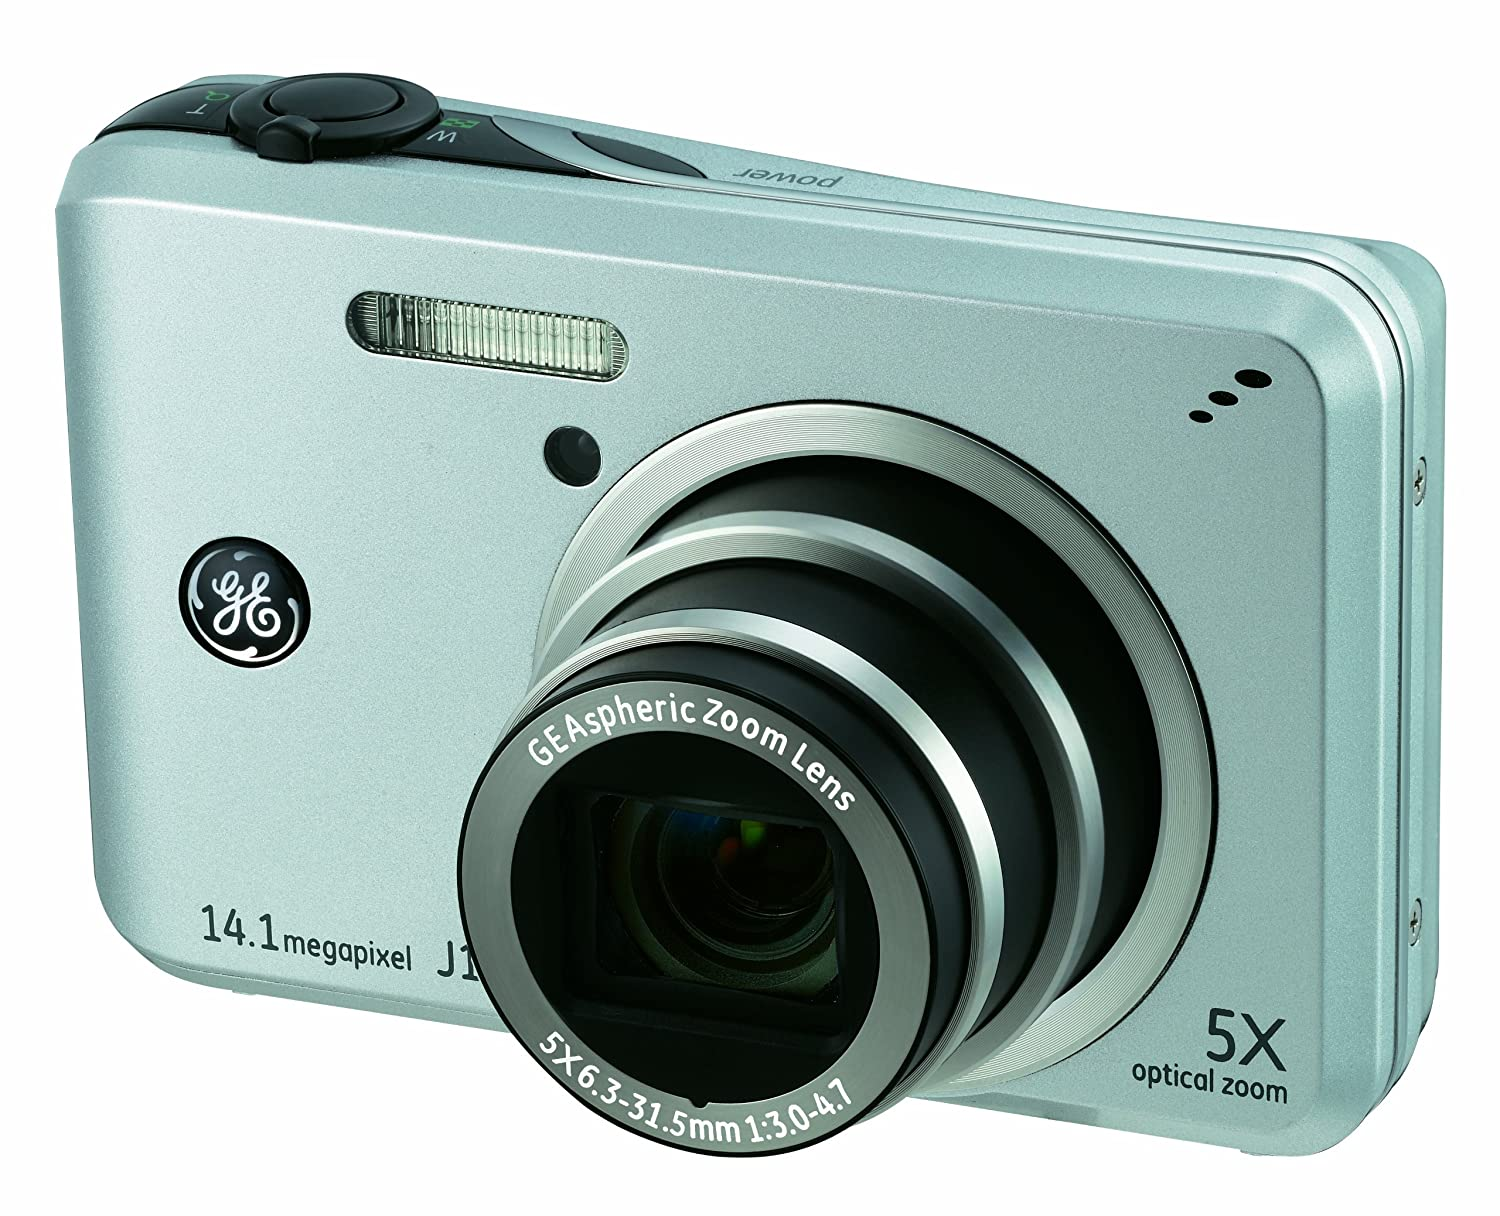 amazon com ge j1455 14mp digital camera with 5x optical zoom and rh amazon com Canon 12.1 Megapixel Digital Camera Canon 12.1 Megapixel Digital Camera